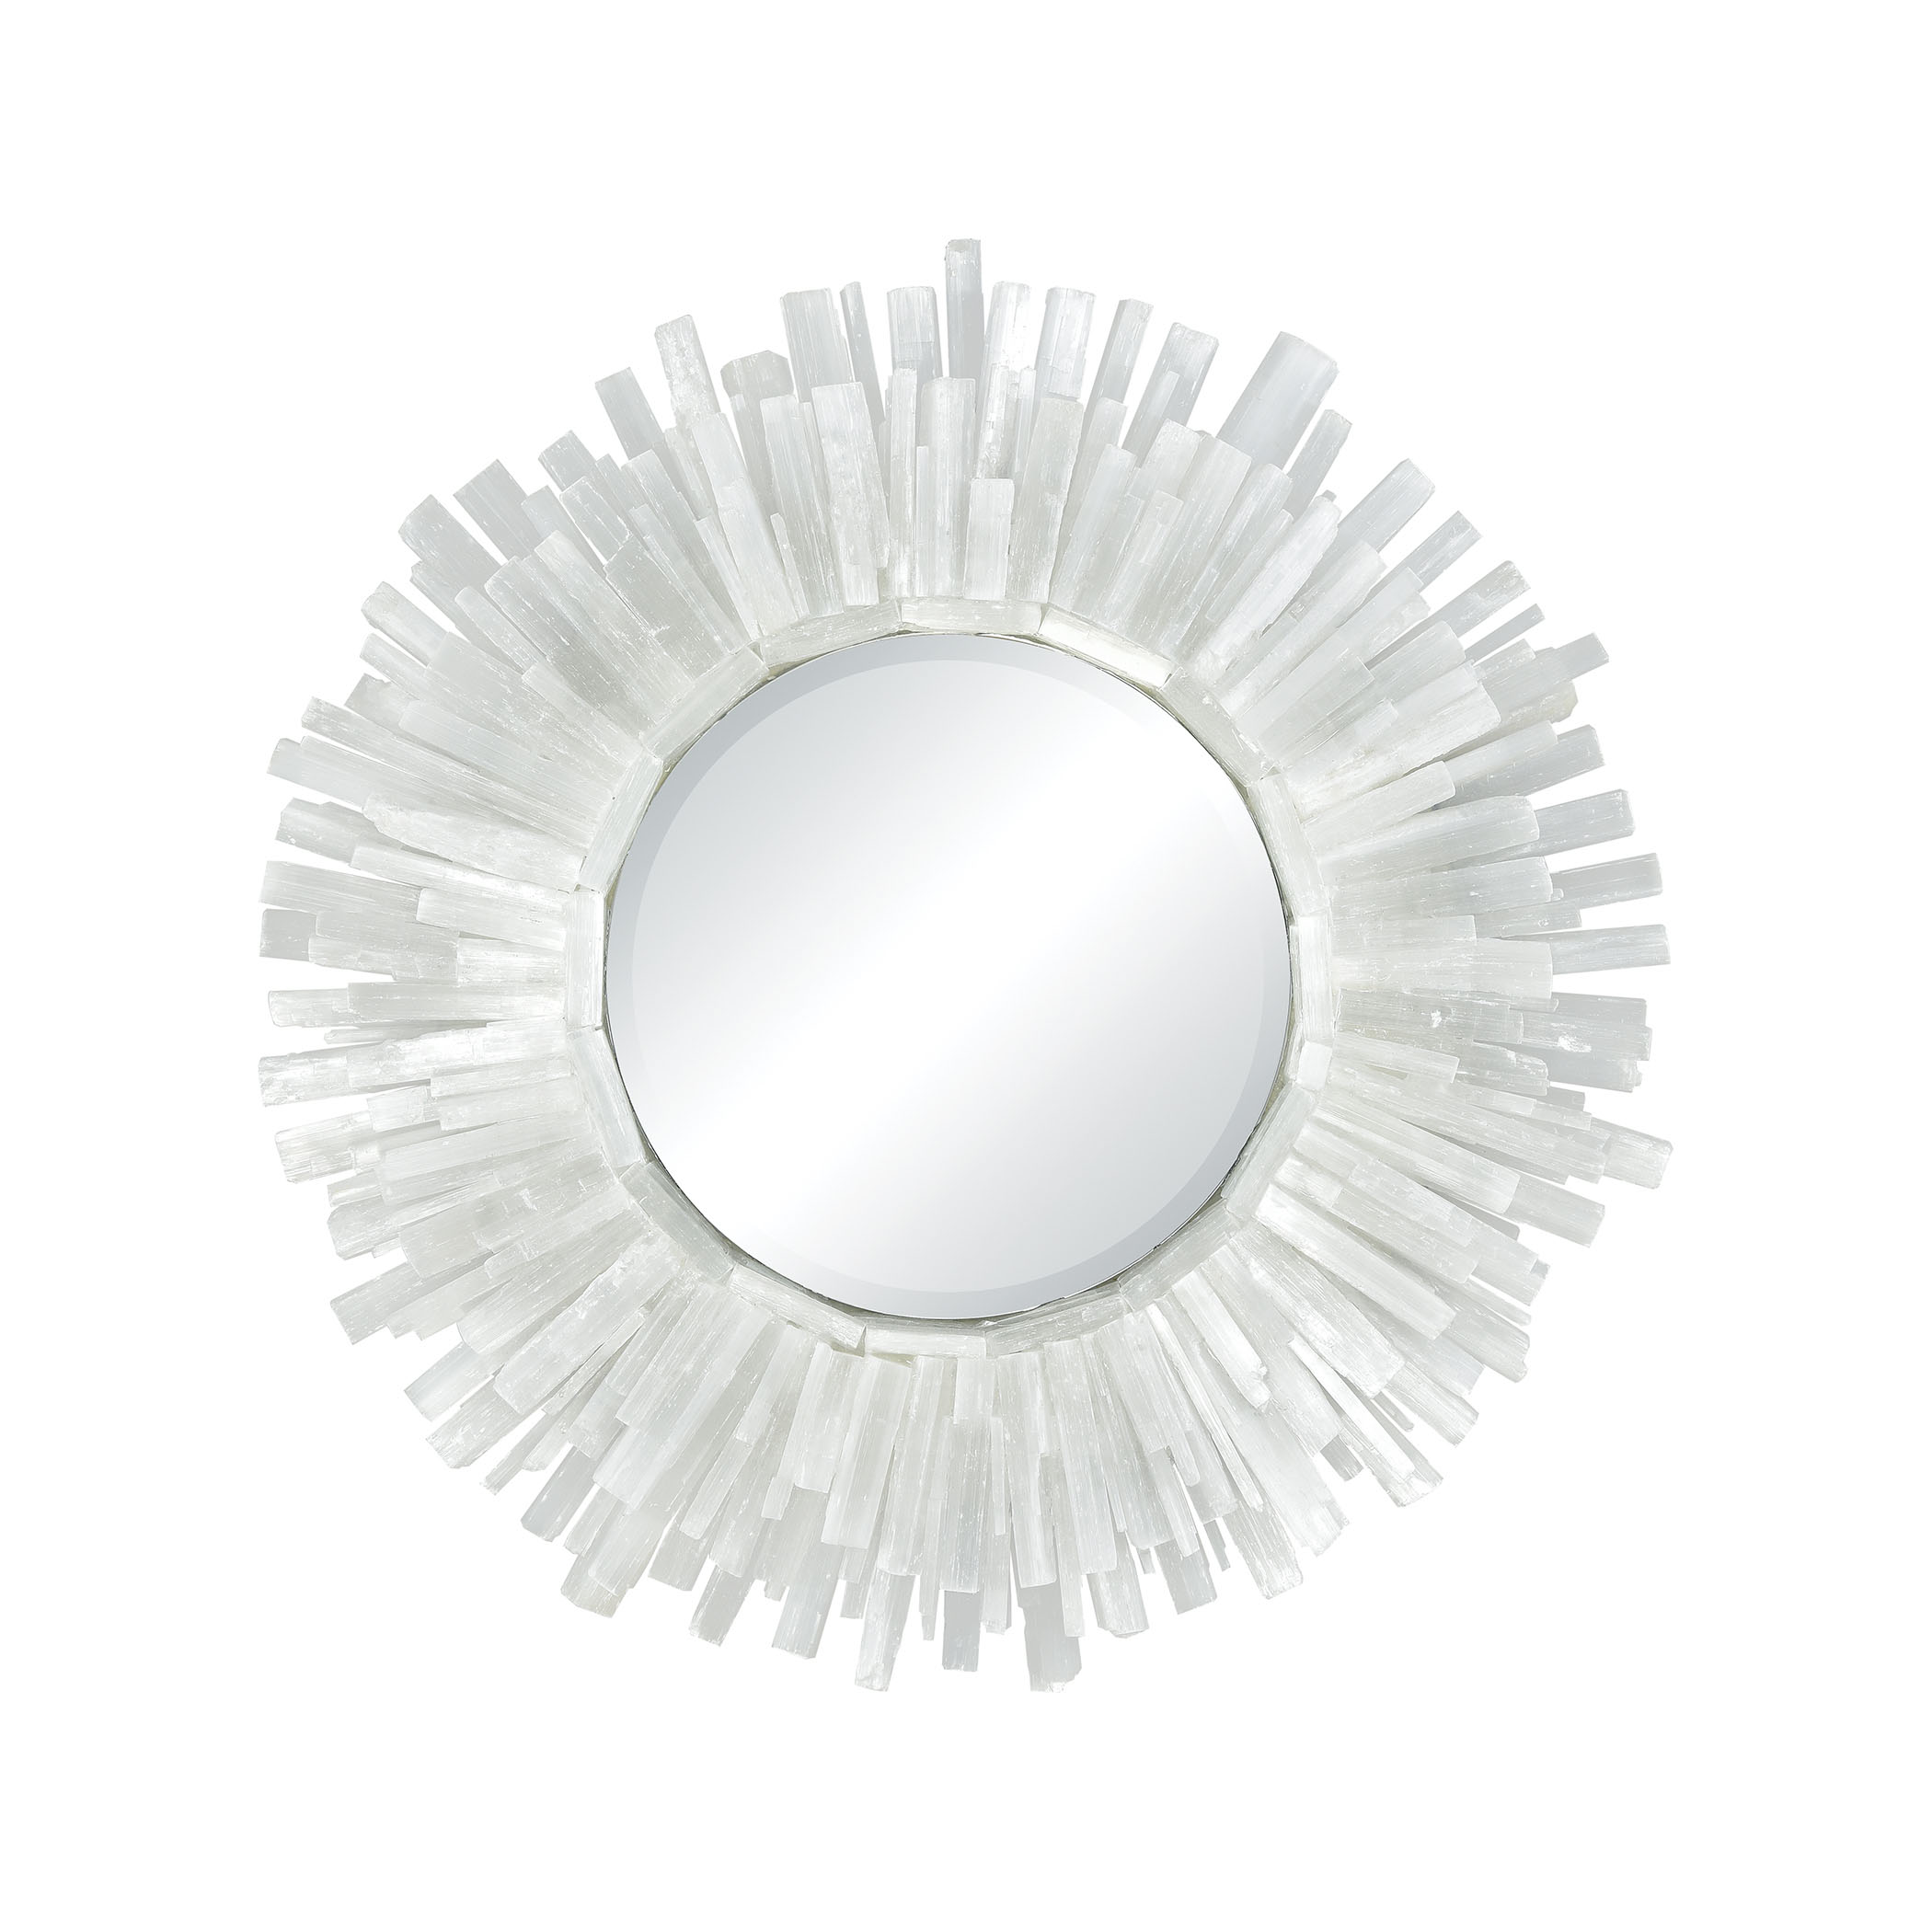 Mirror with crystals along the edges from Dimond Home